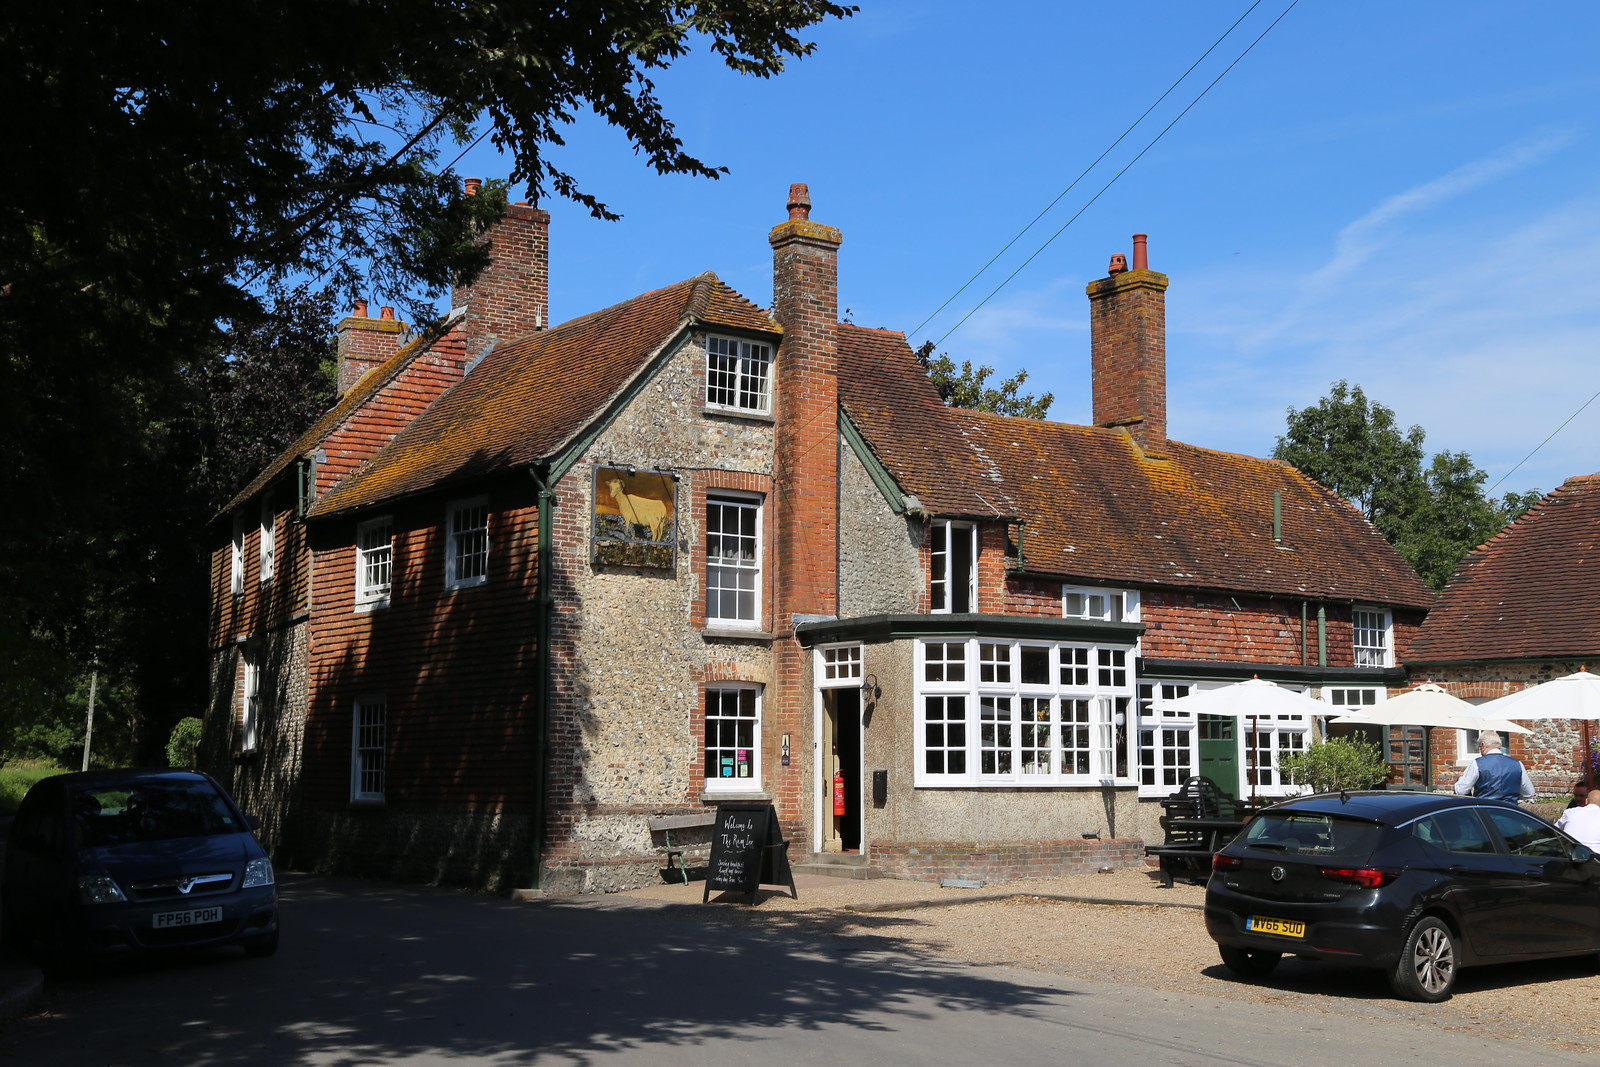 The Ram Inn - Firle